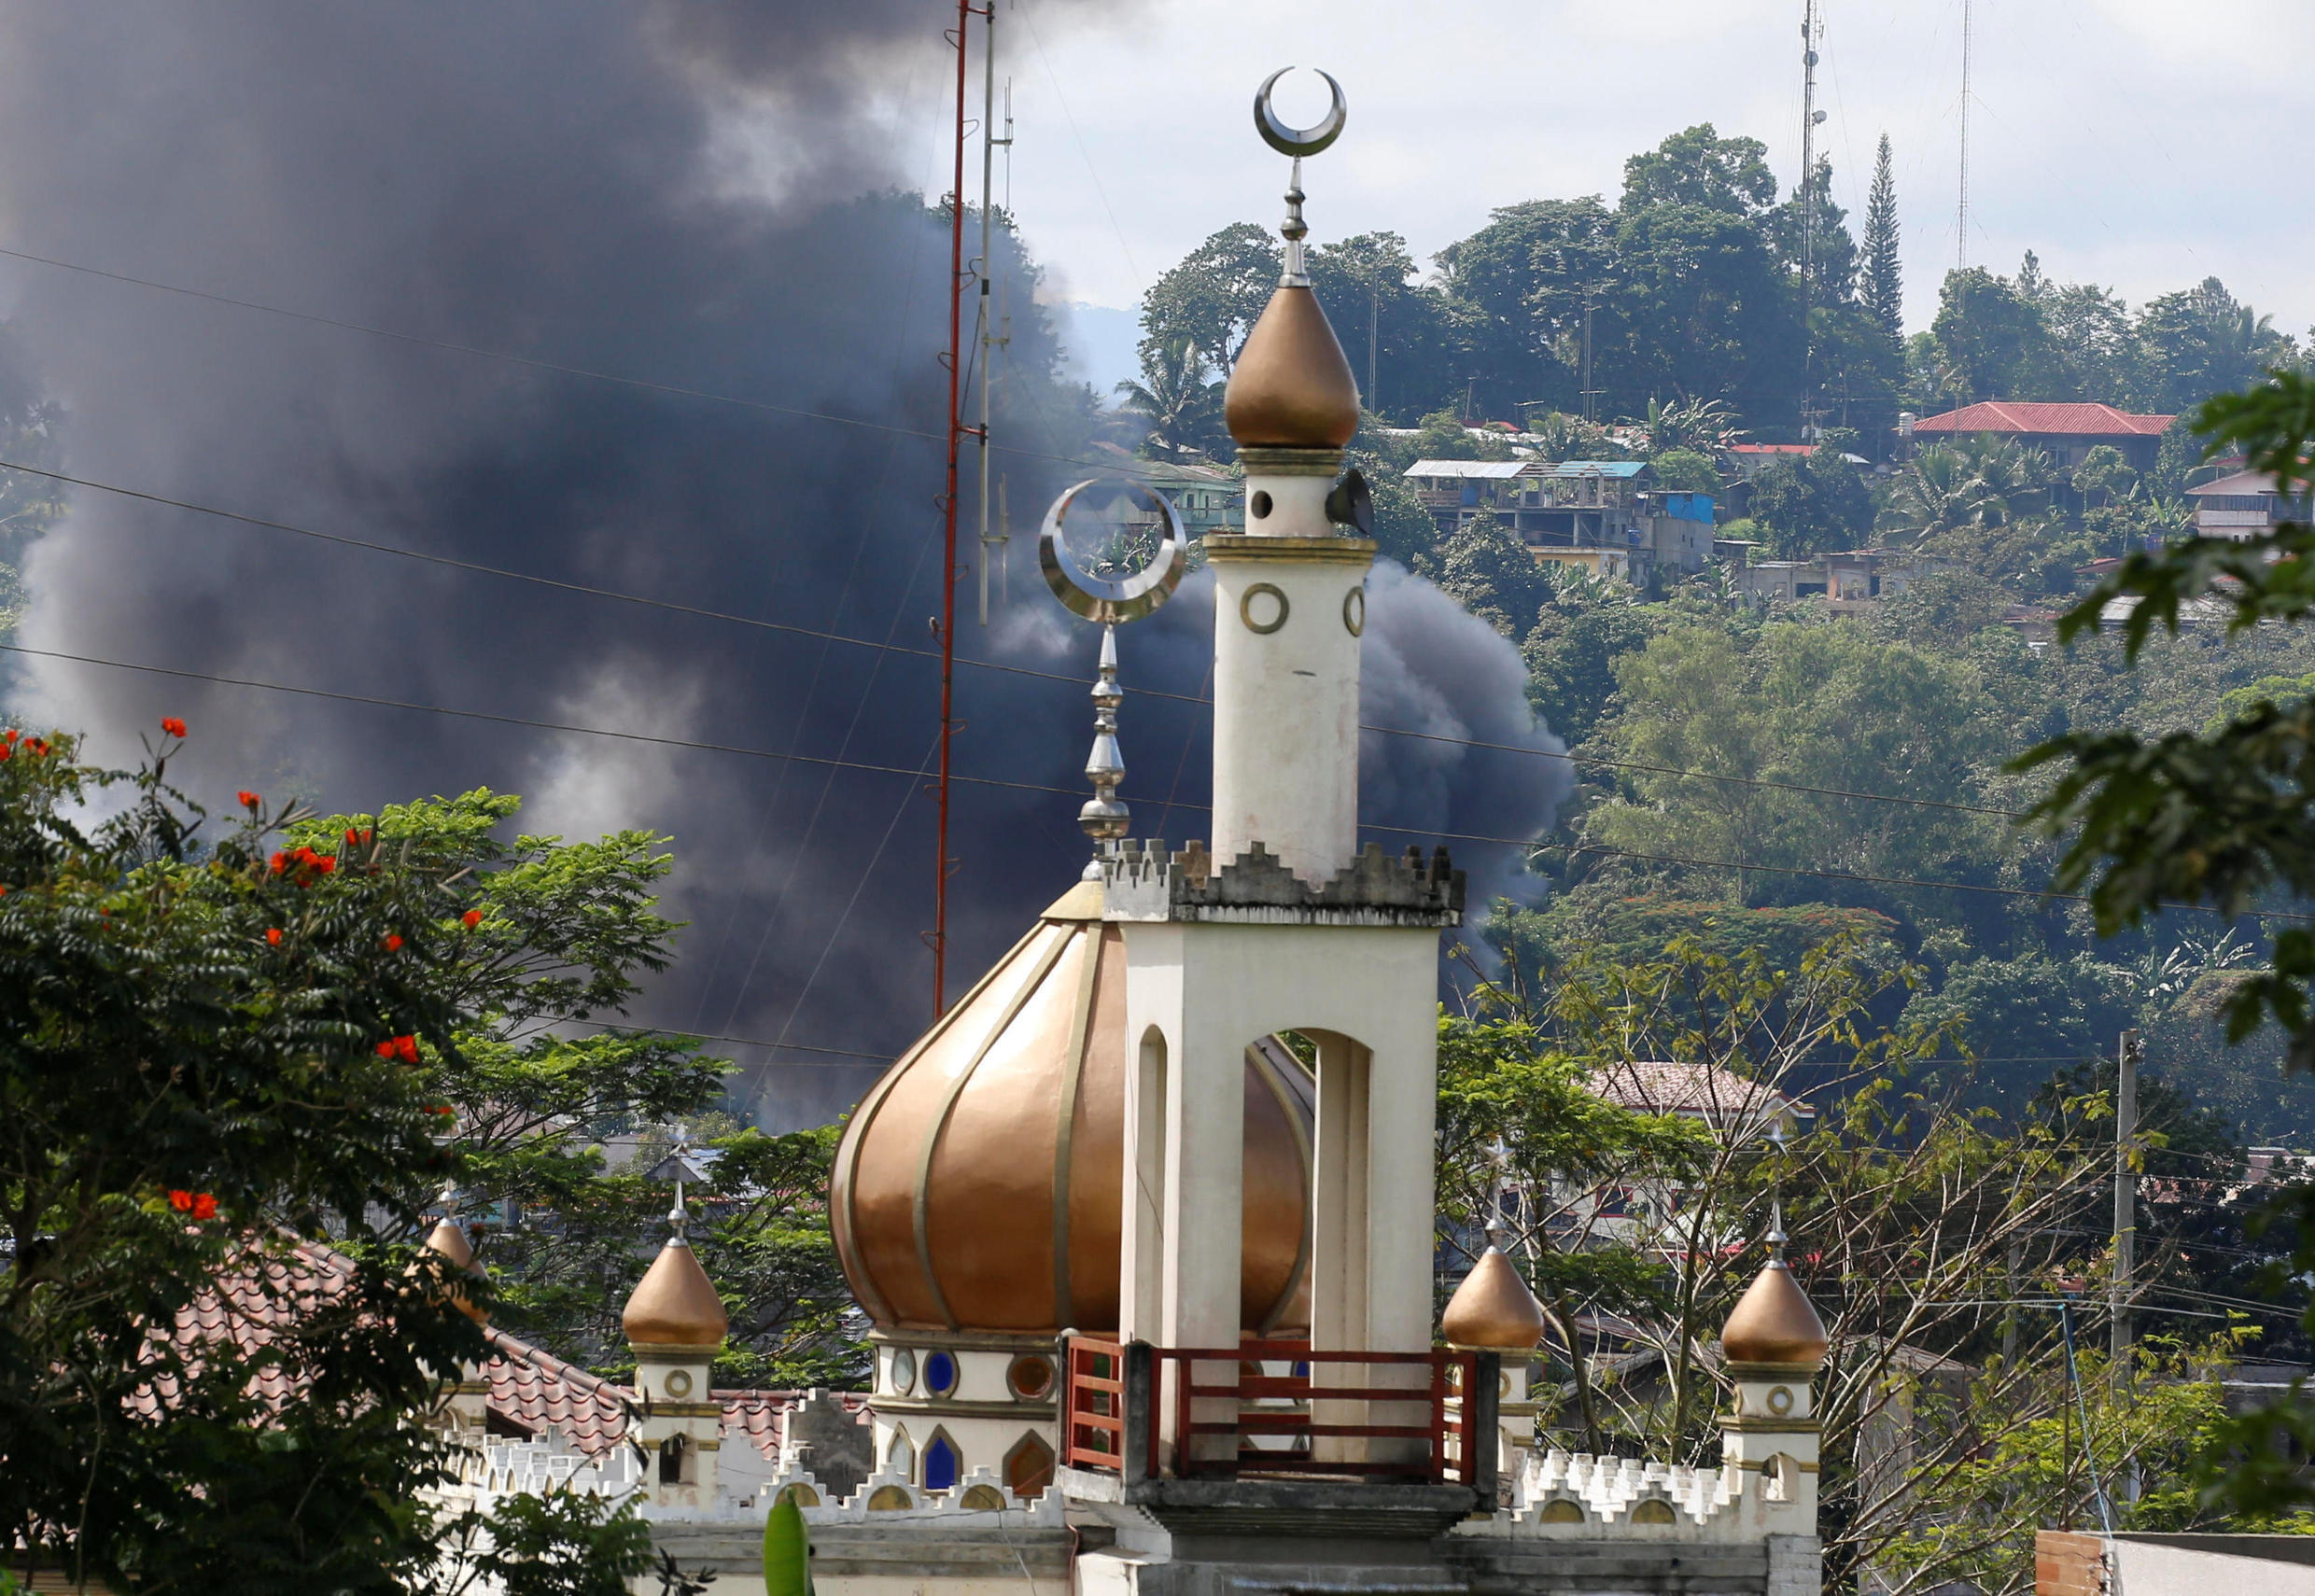 Smoke billows at the site of fighting between government soldiers and Maute group, near a mosque in Marawi City in southern Philippines May 30, 2017.